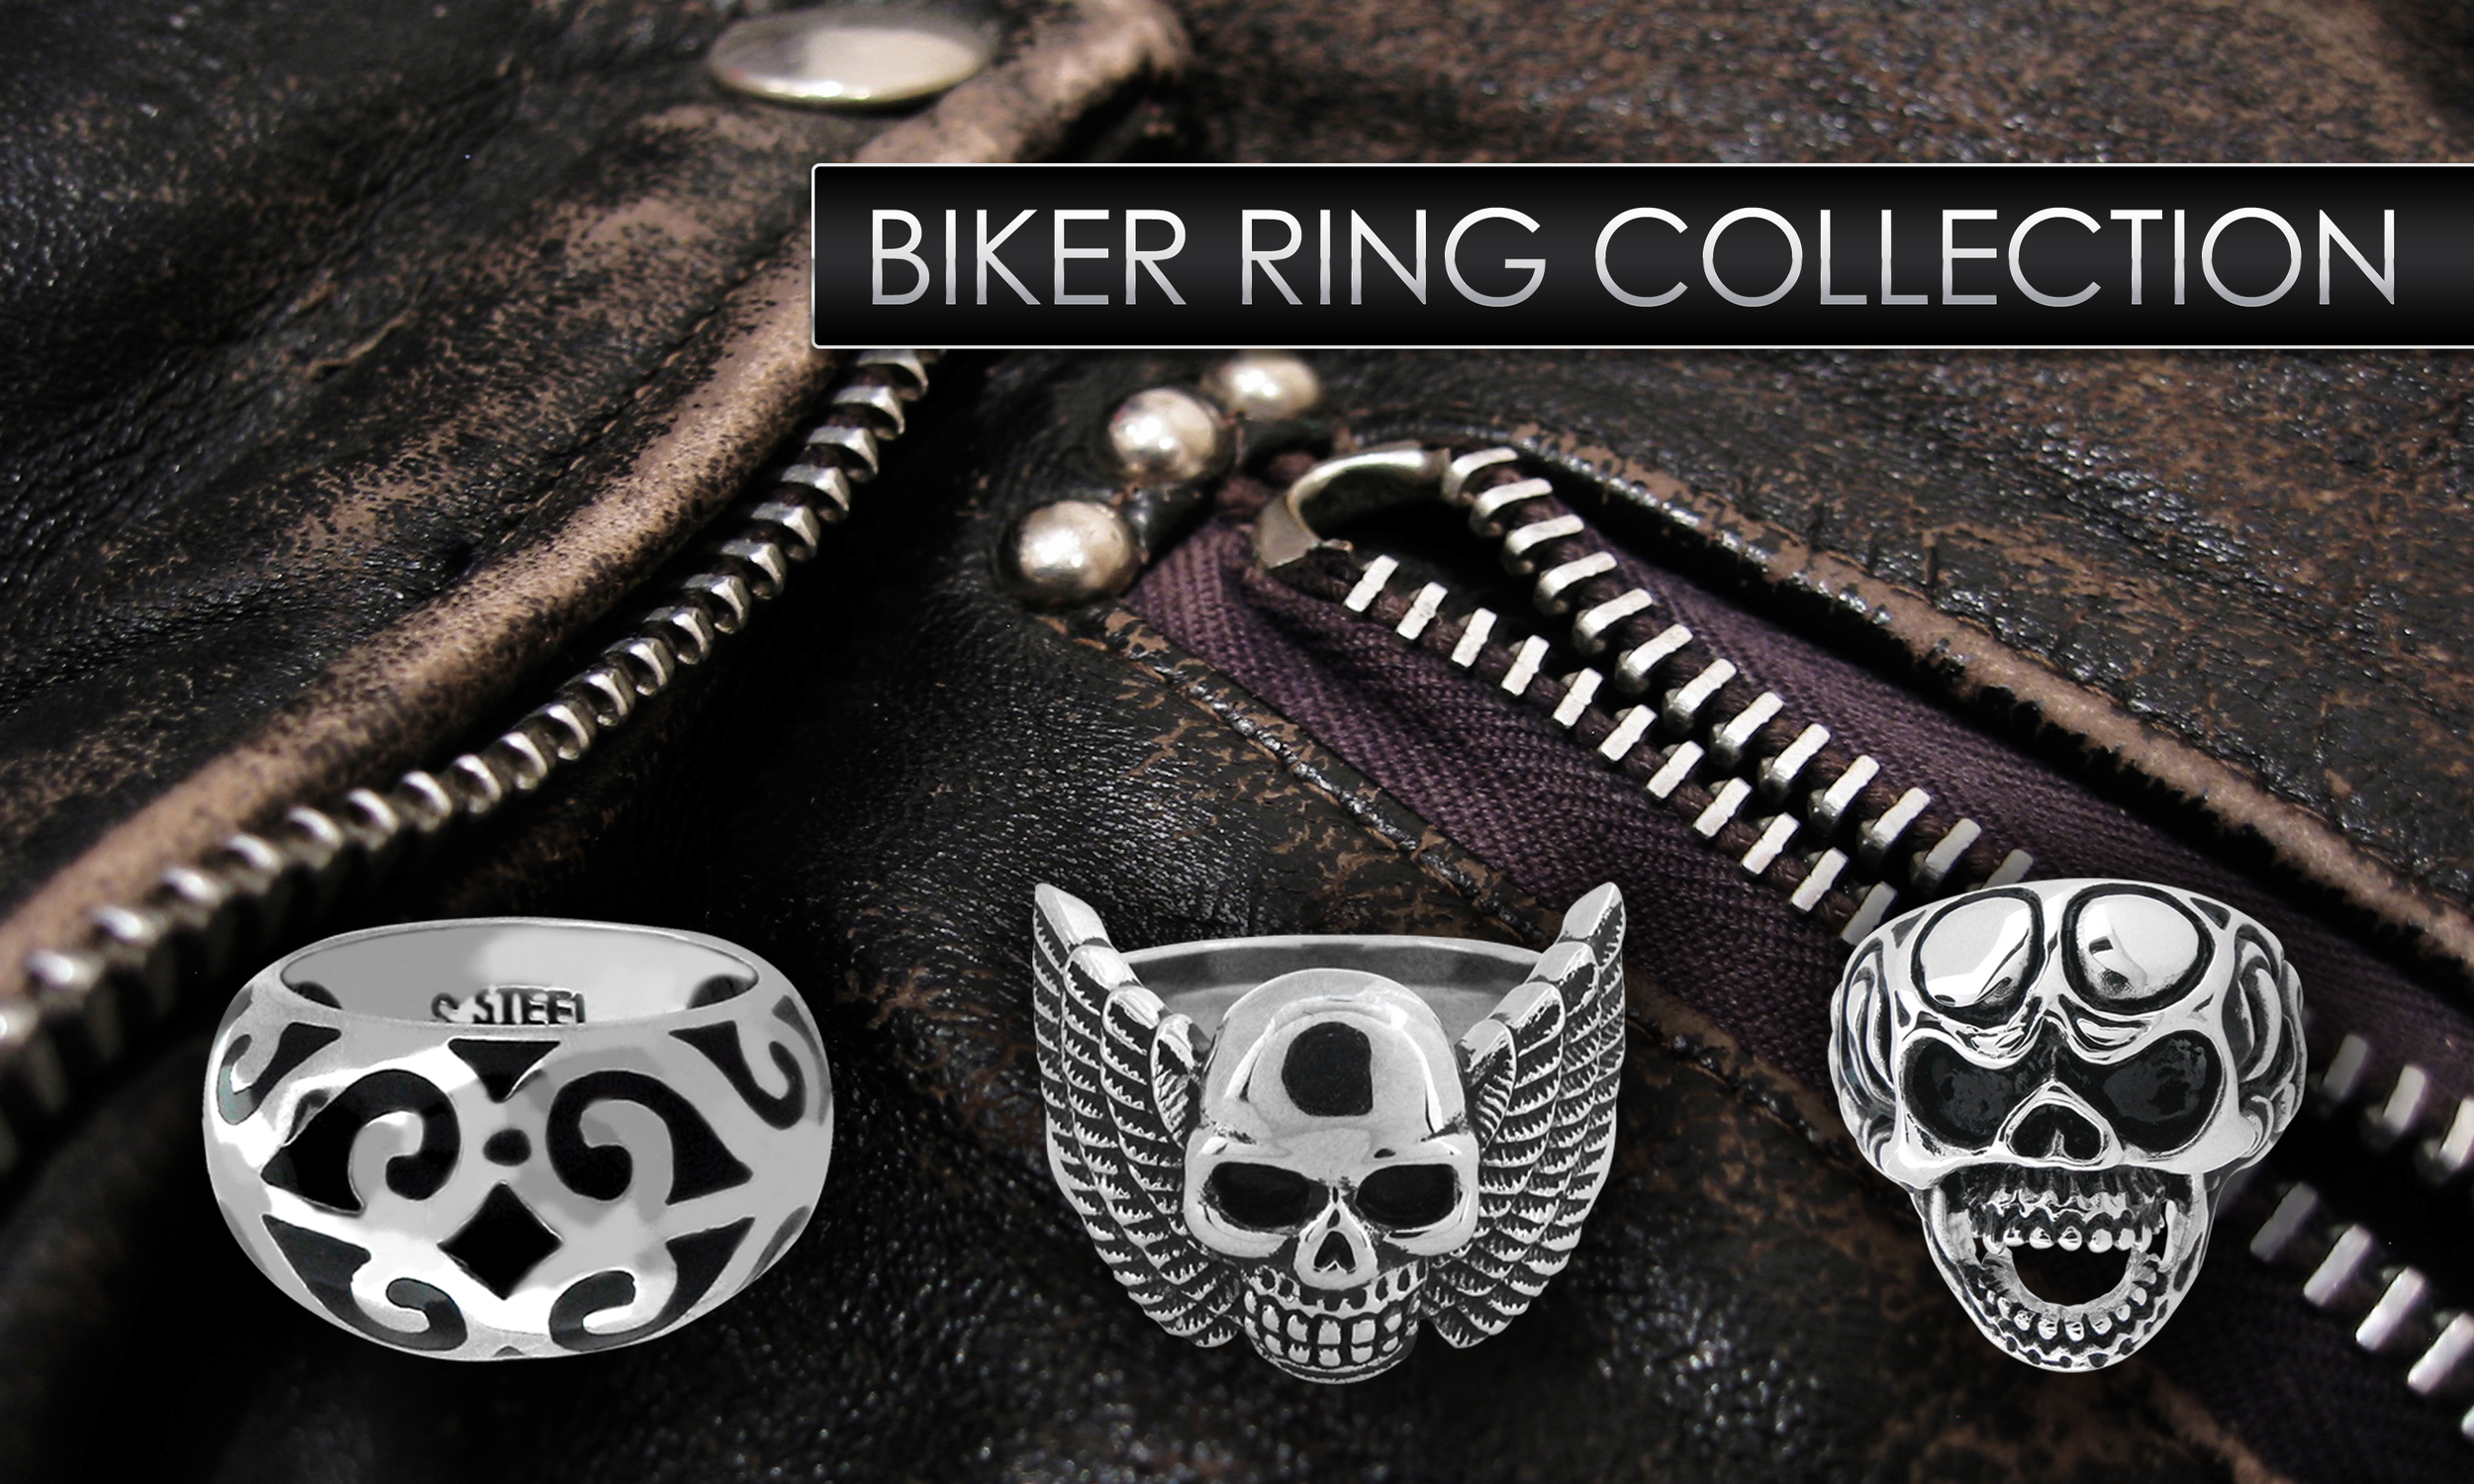 JMR-Biker-Ring-Collection-Slide-Large.jpg